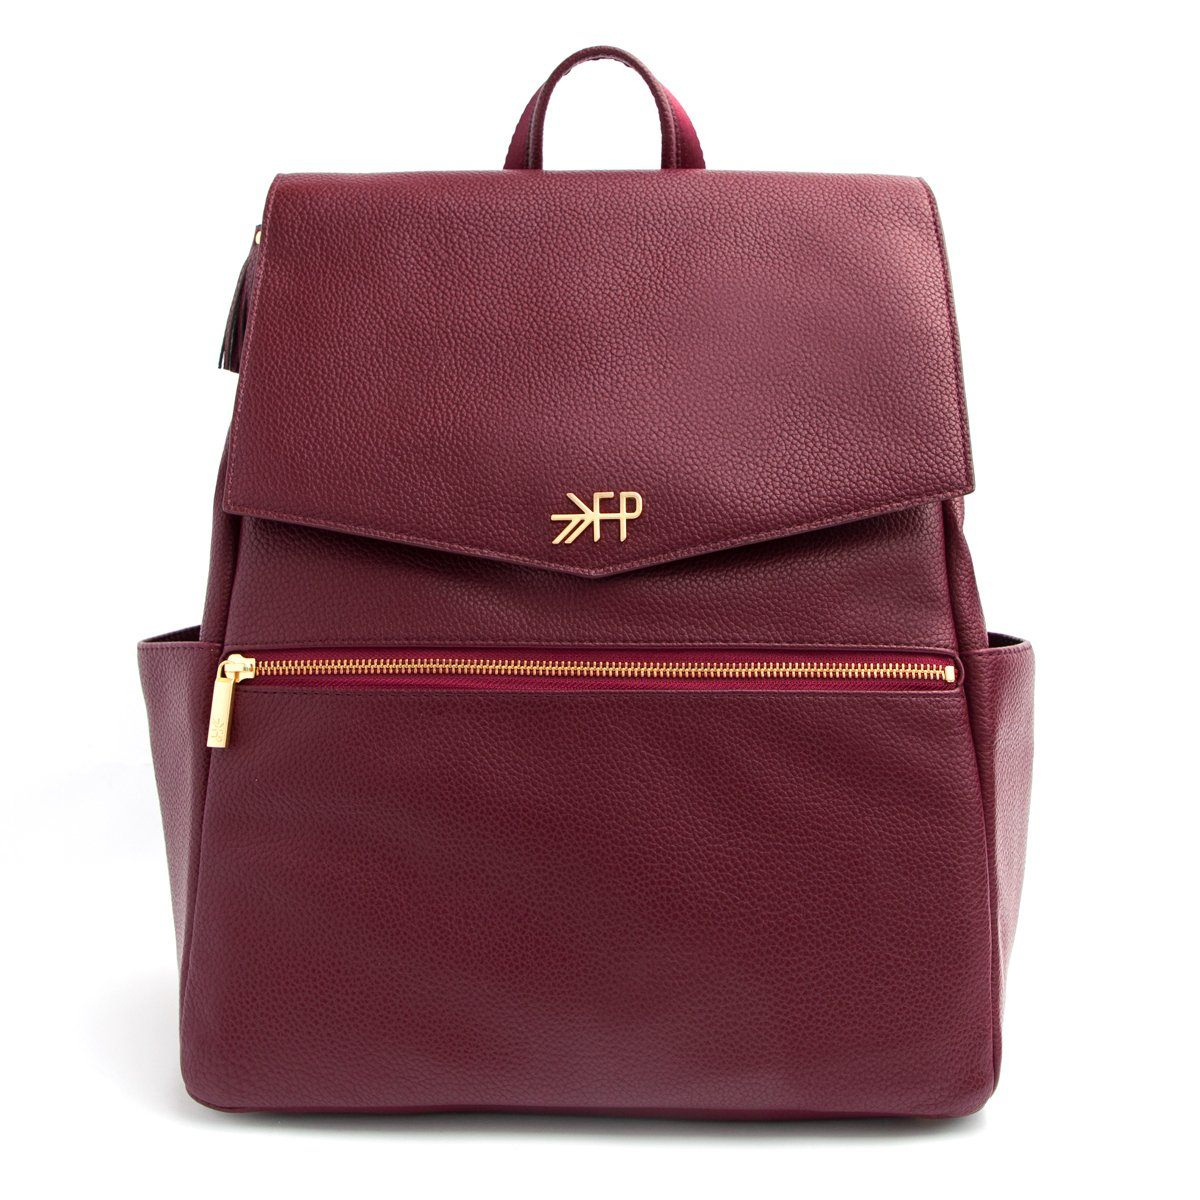 Burgundy Classic Diaper Bag